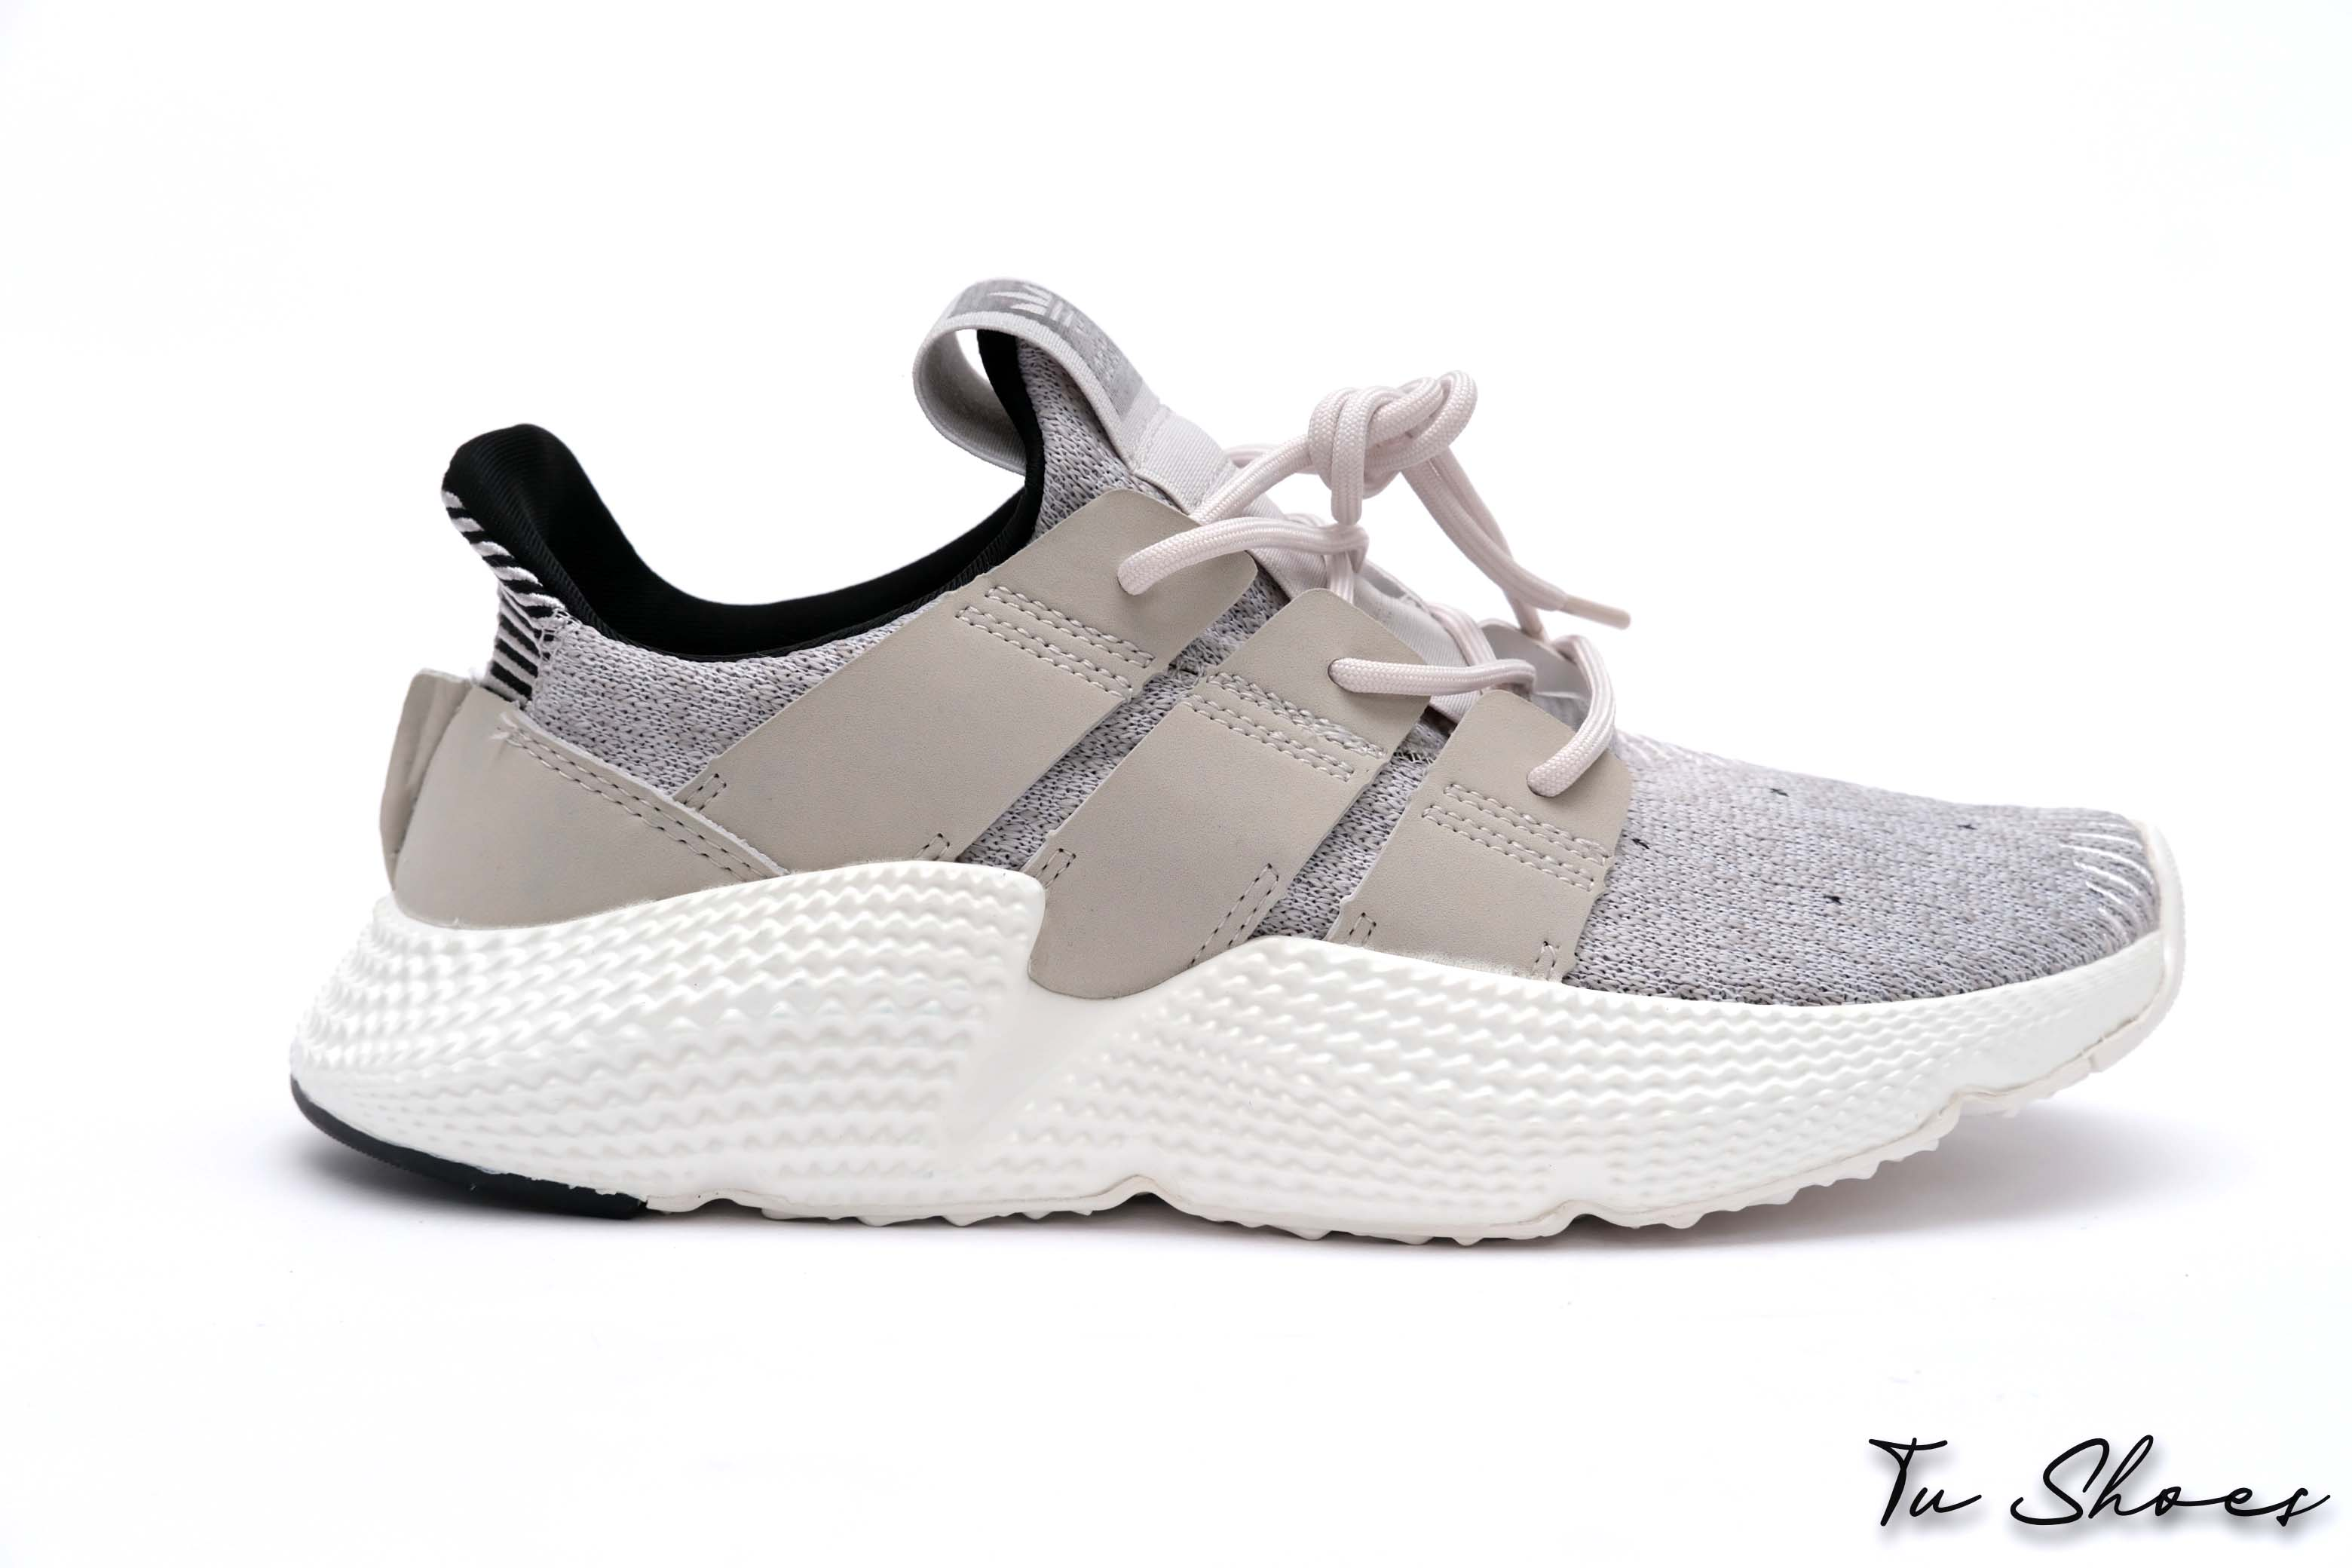 Prophere Grey One - Rep 1:1